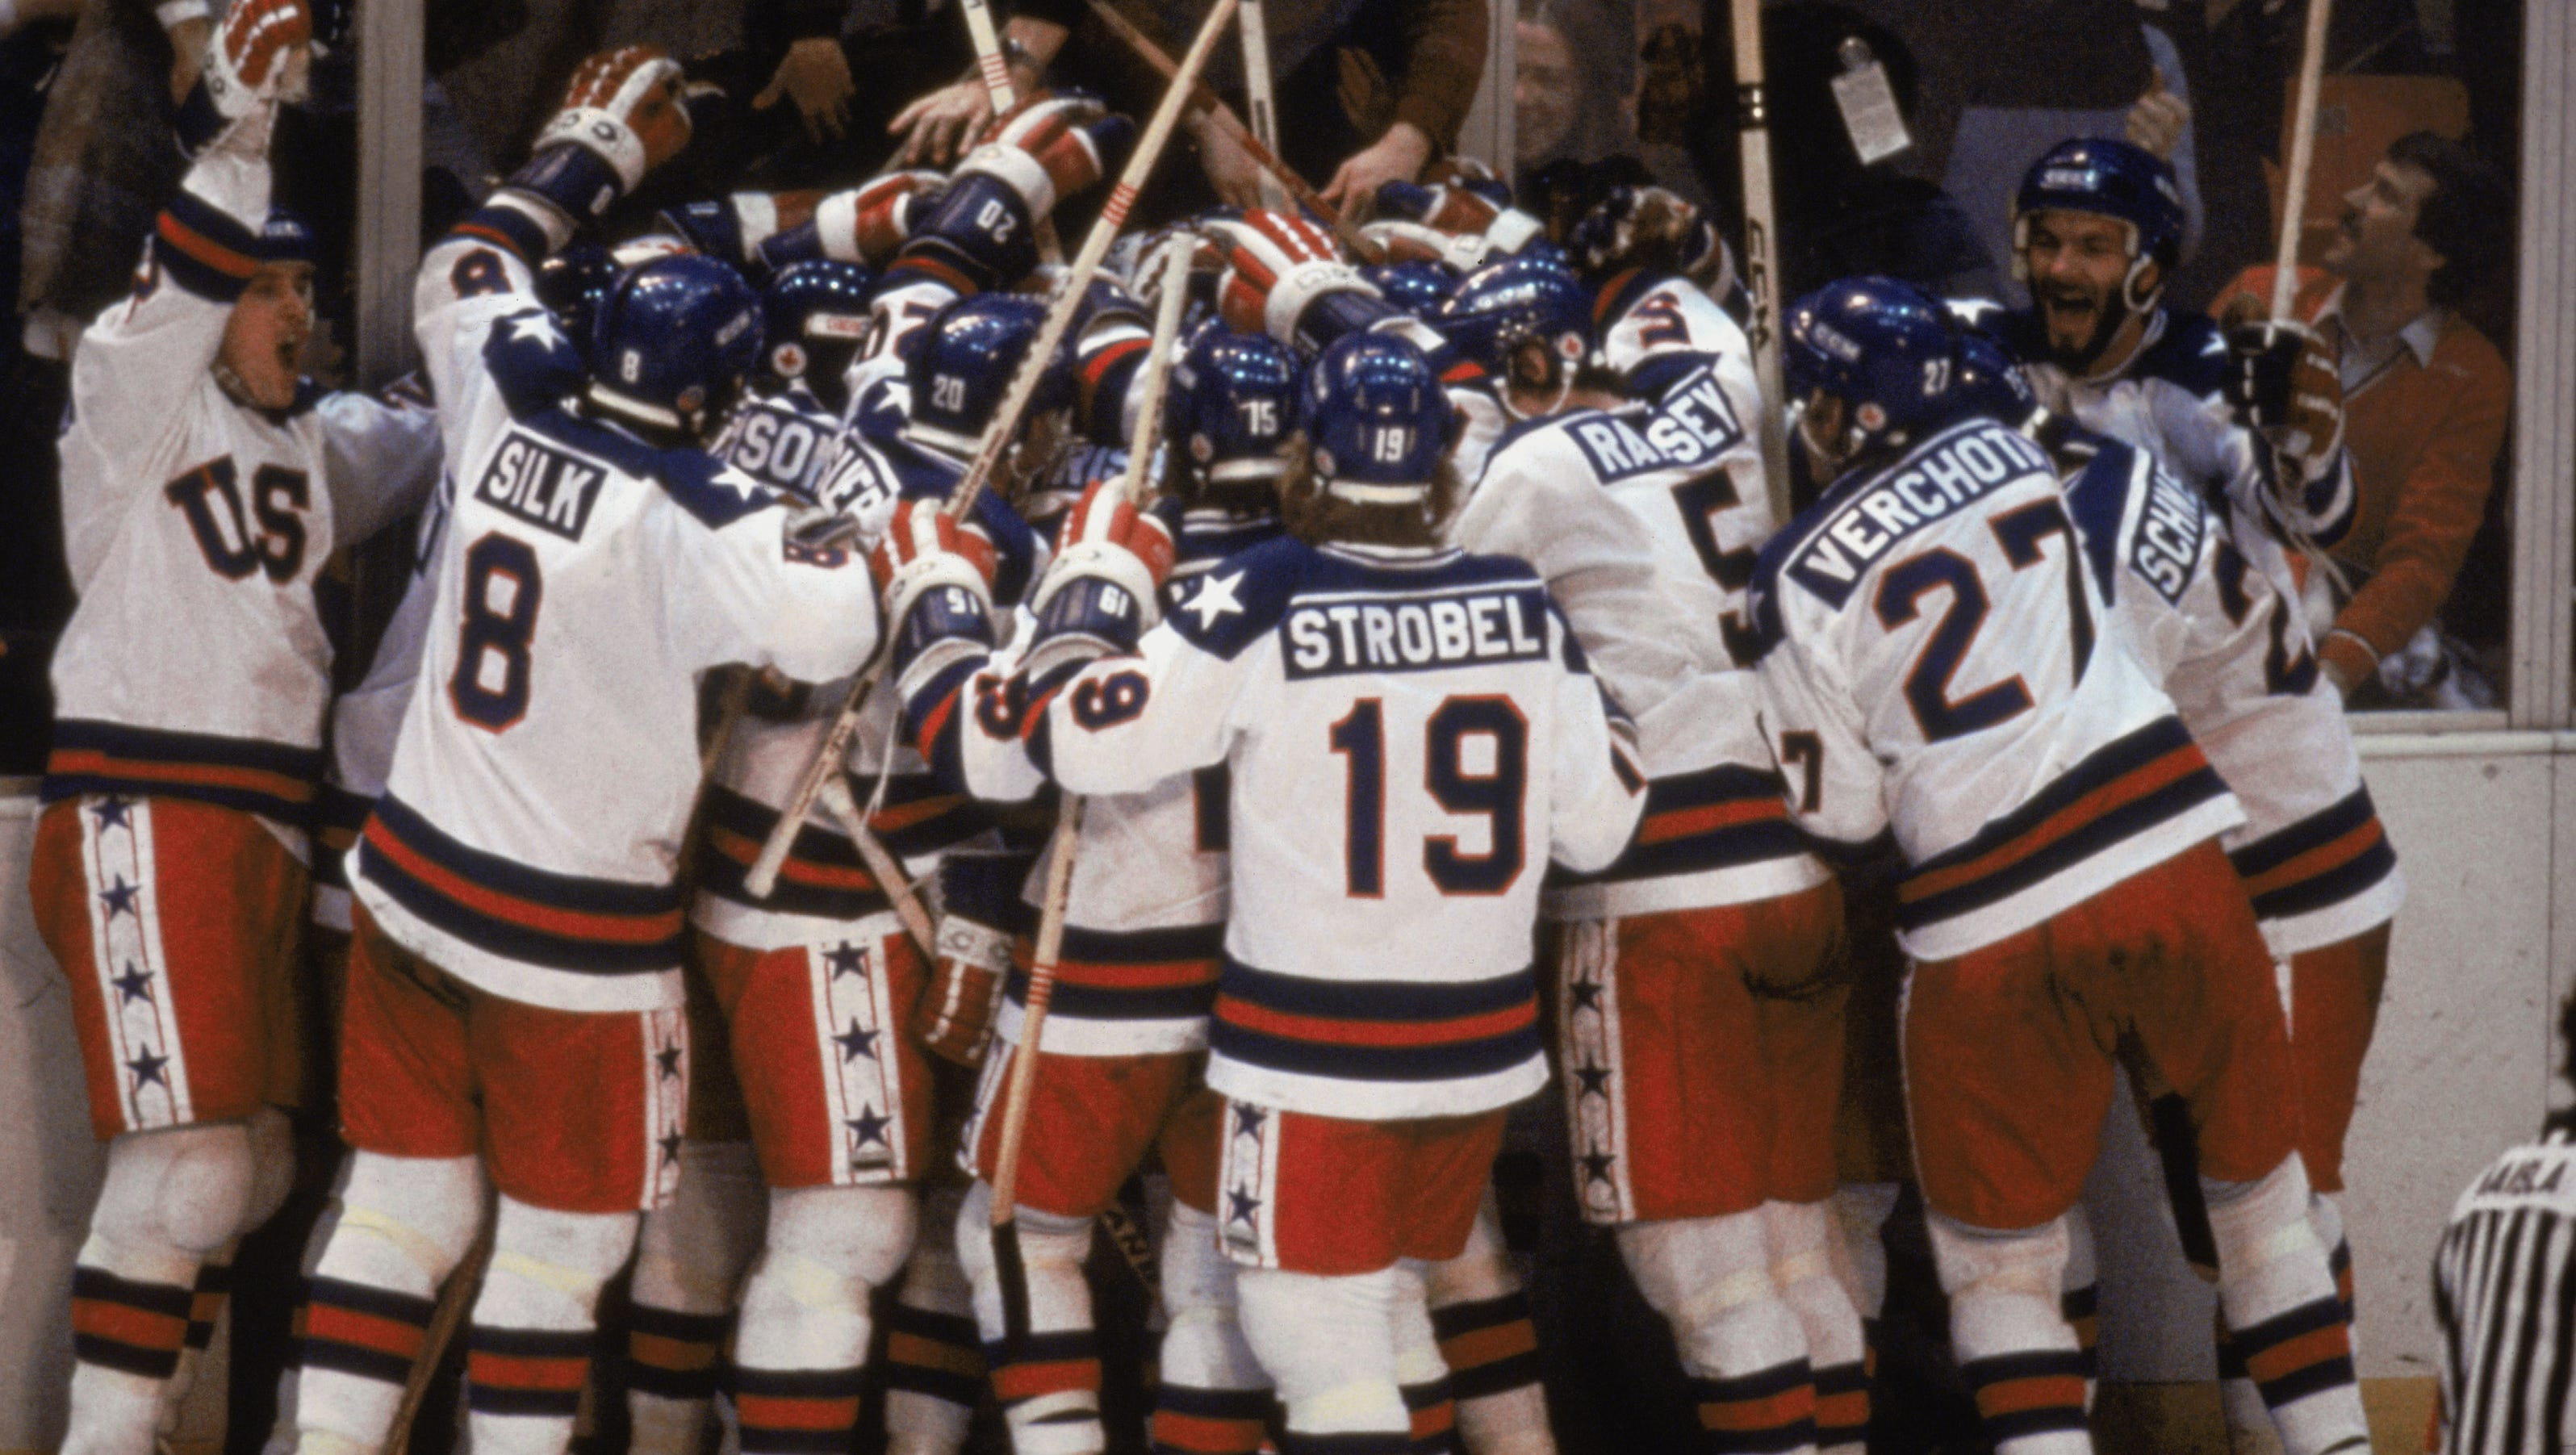 1980 us olympic hockey team to relive miracle on ice moment